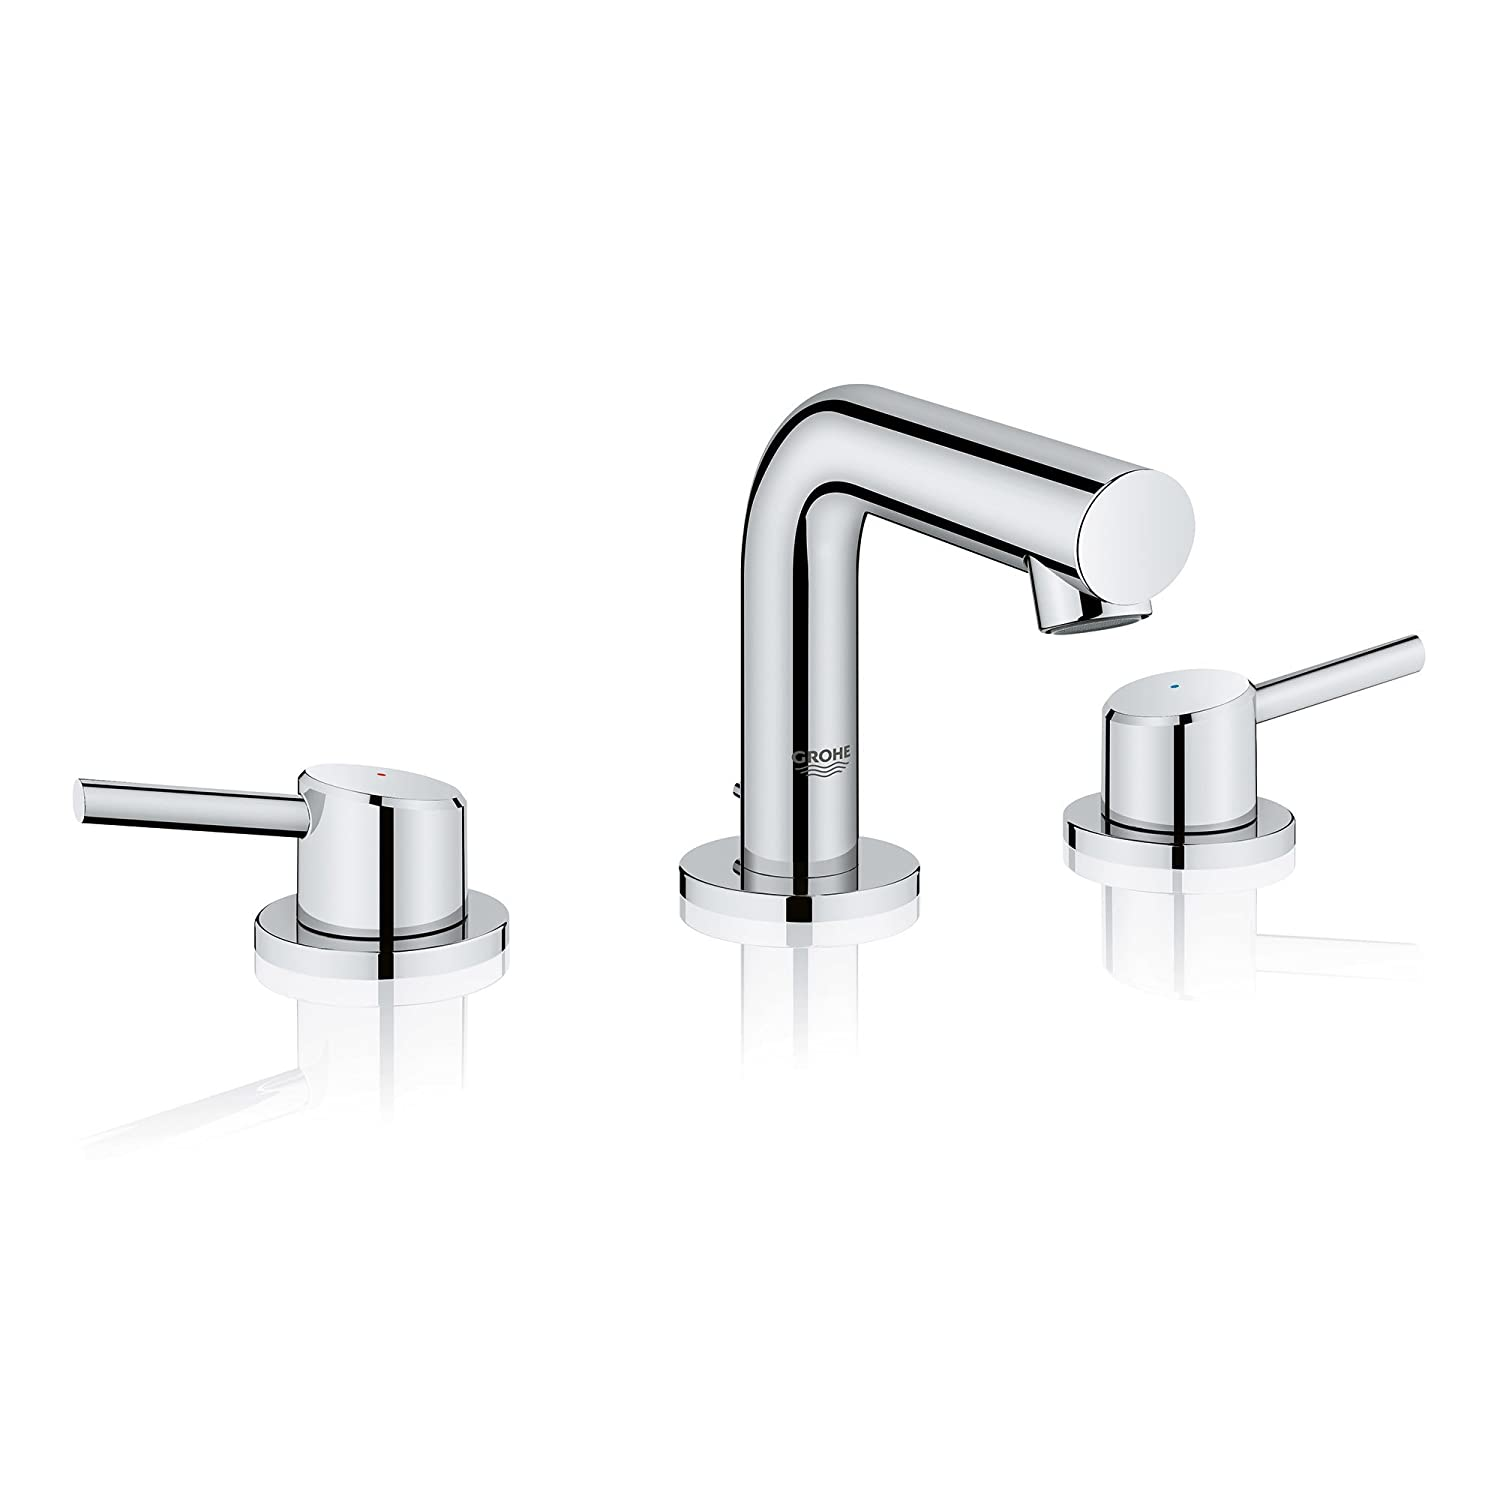 GROHE 20572001 Concetto 8 In. Widespread 2-Handle Mid-Arc Bathroom Faucet In Starlight Chrome